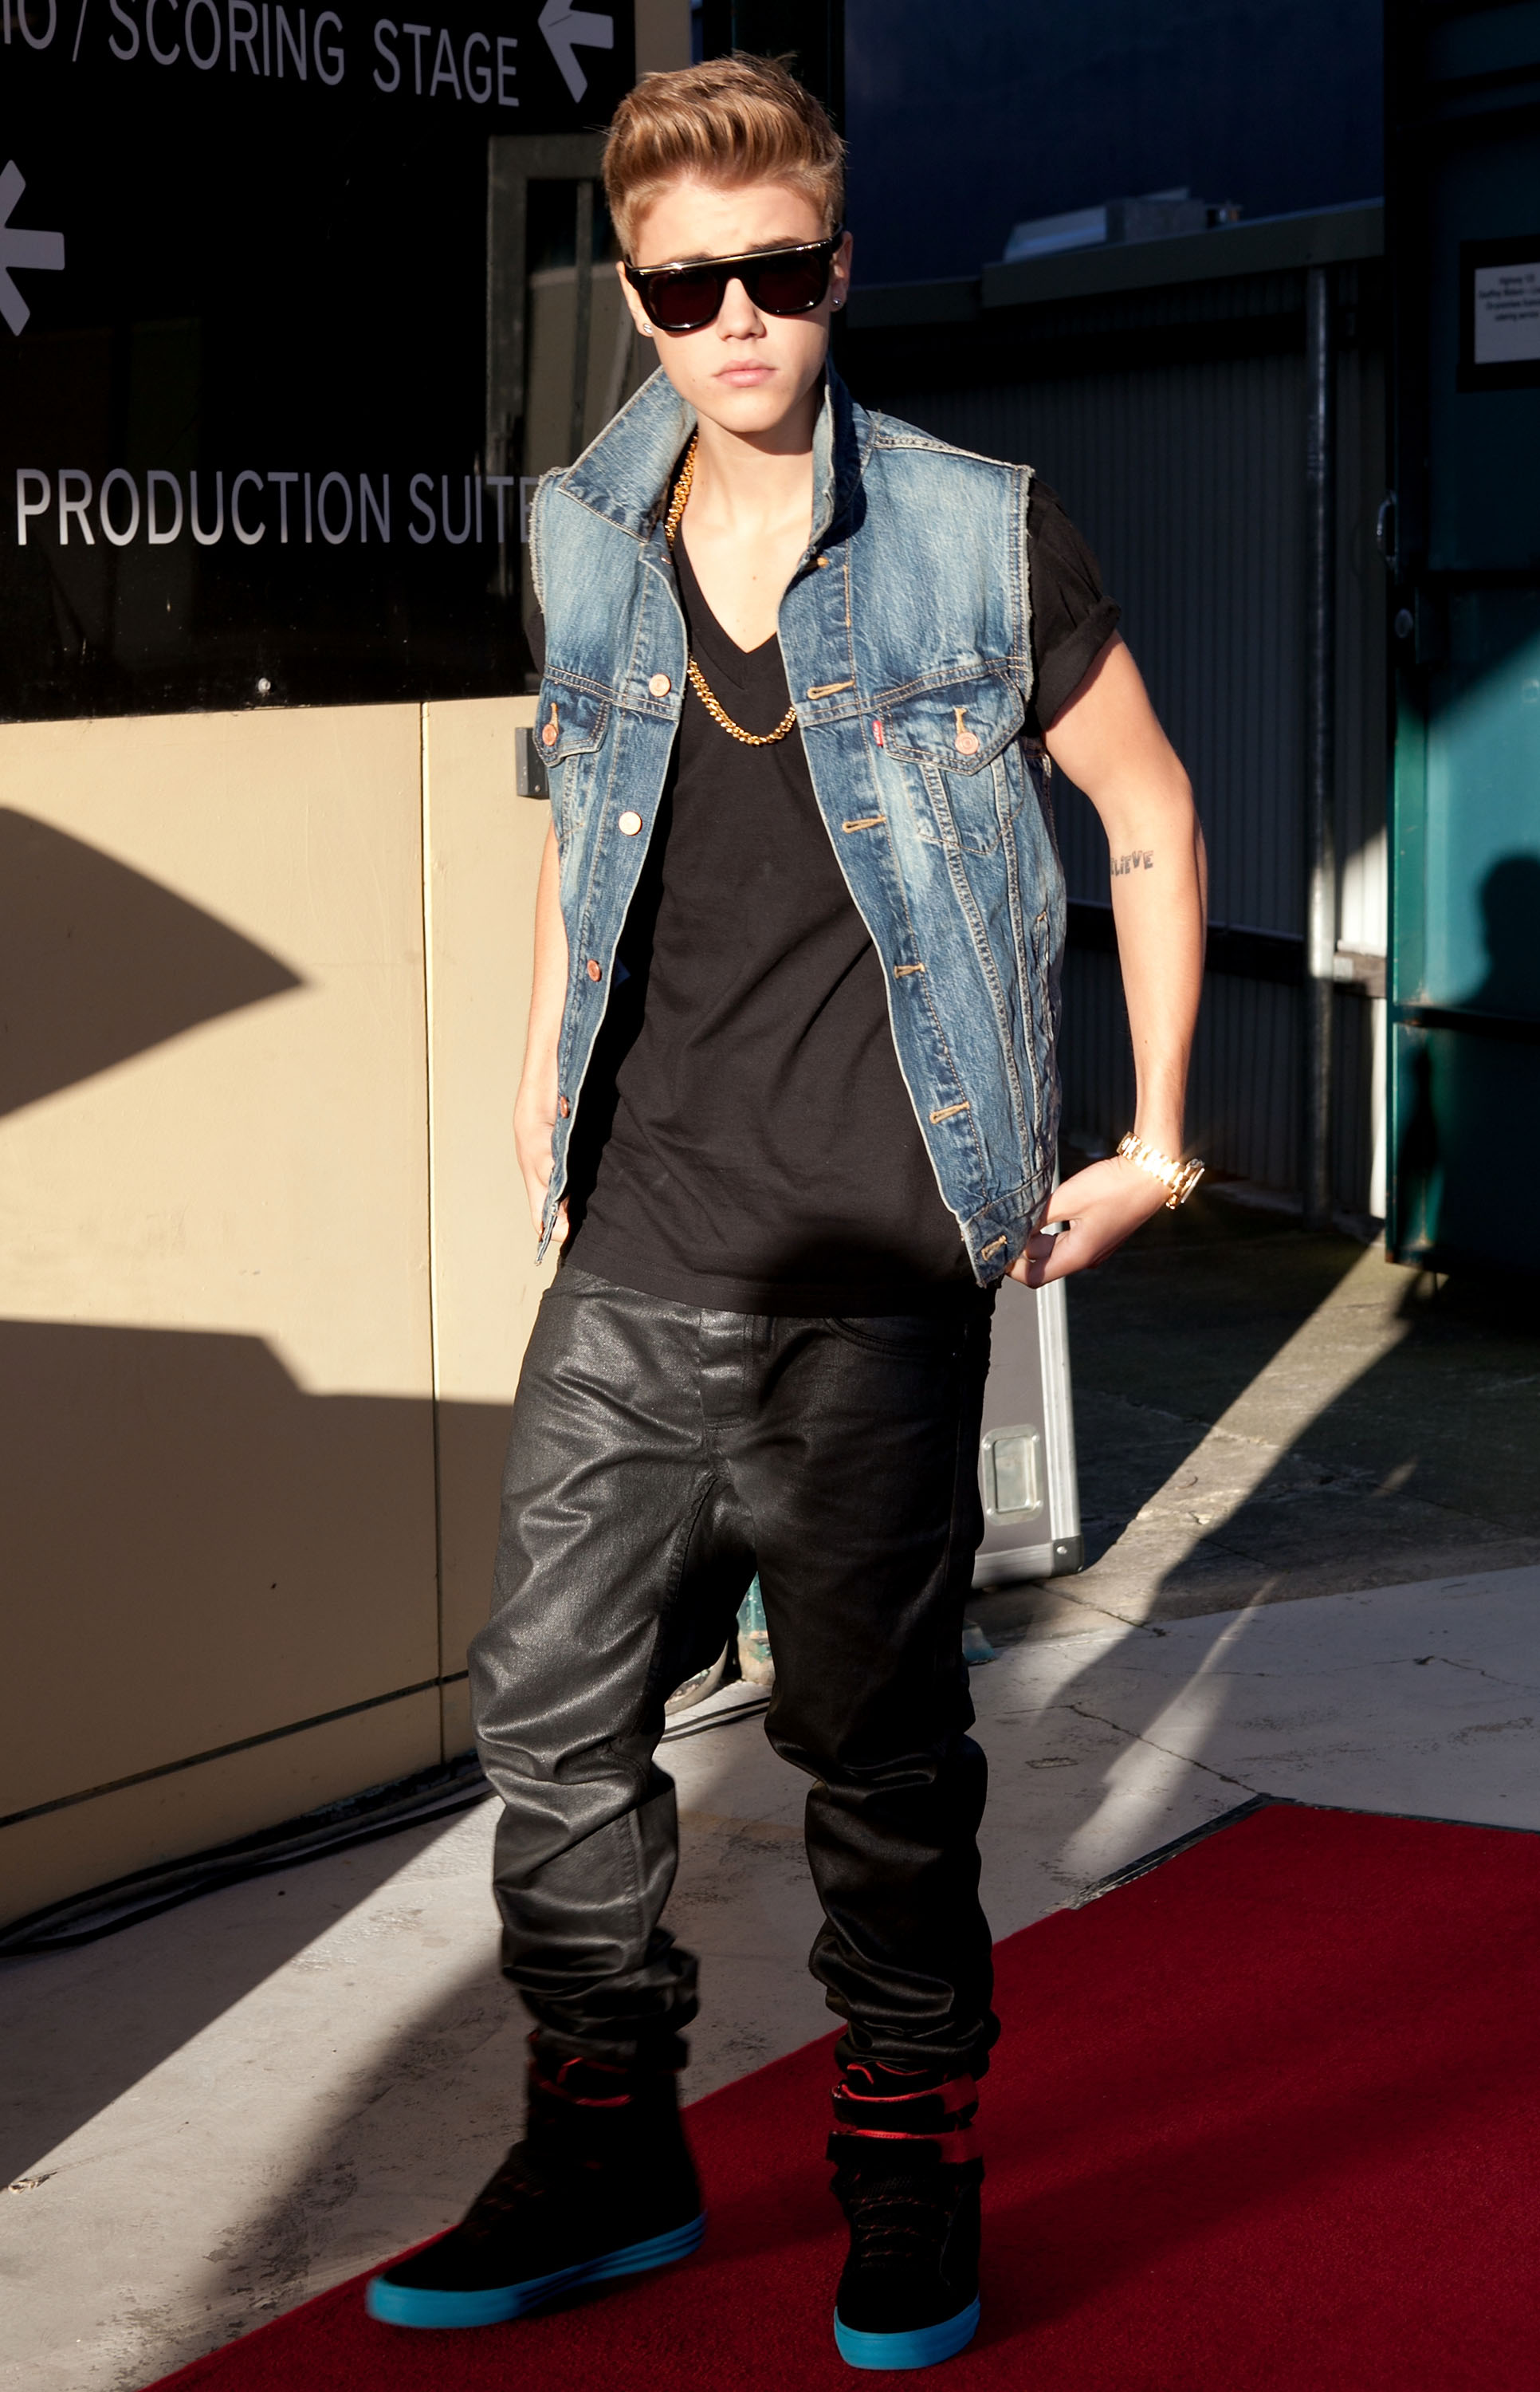 Justin bieber 39 s style hypebeast forums Fashion style justin bieber